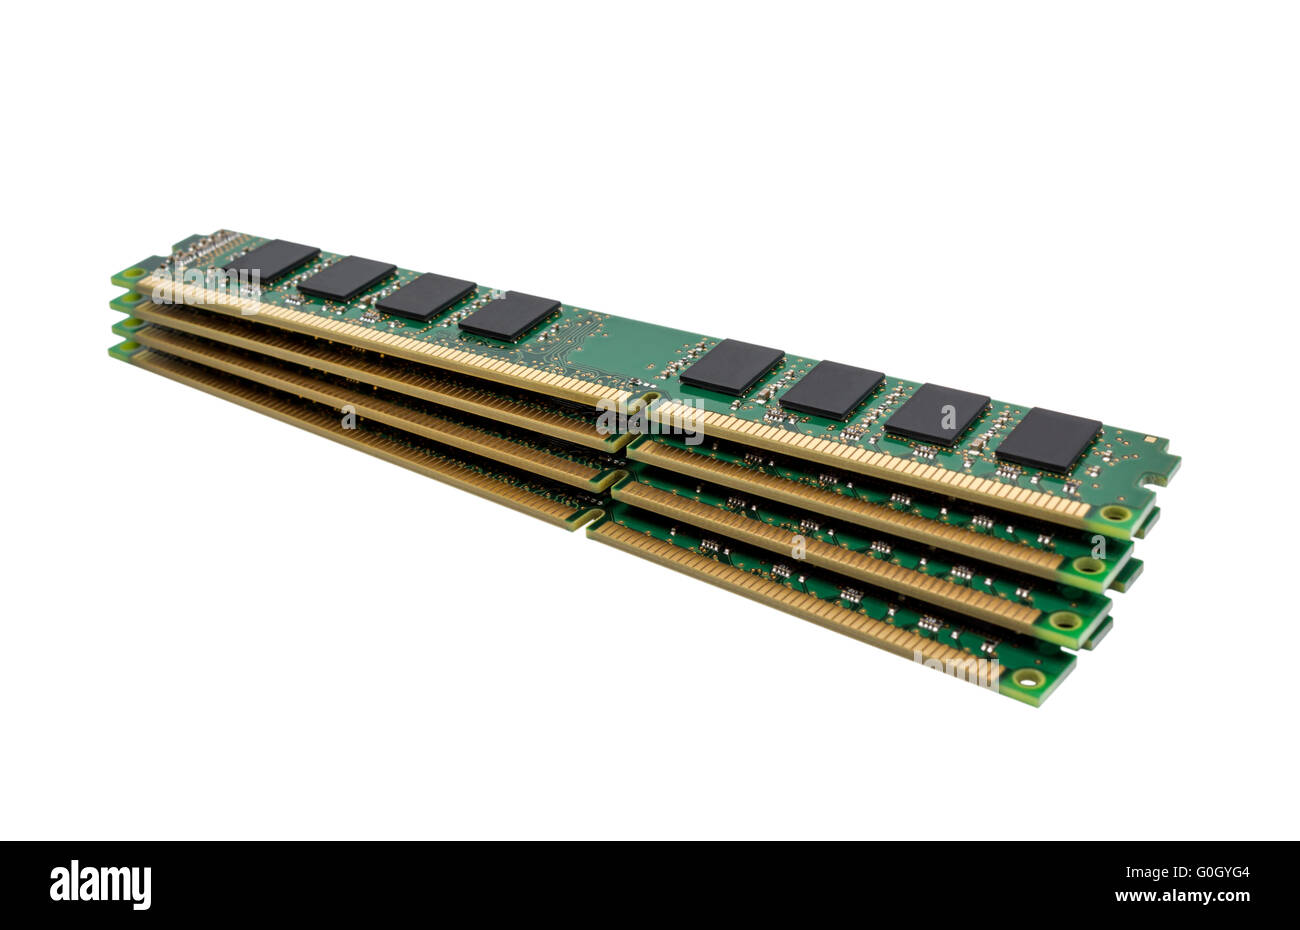 Electronic collection - computer random access memory (RAM) modules isolated on the white background - Stock Image